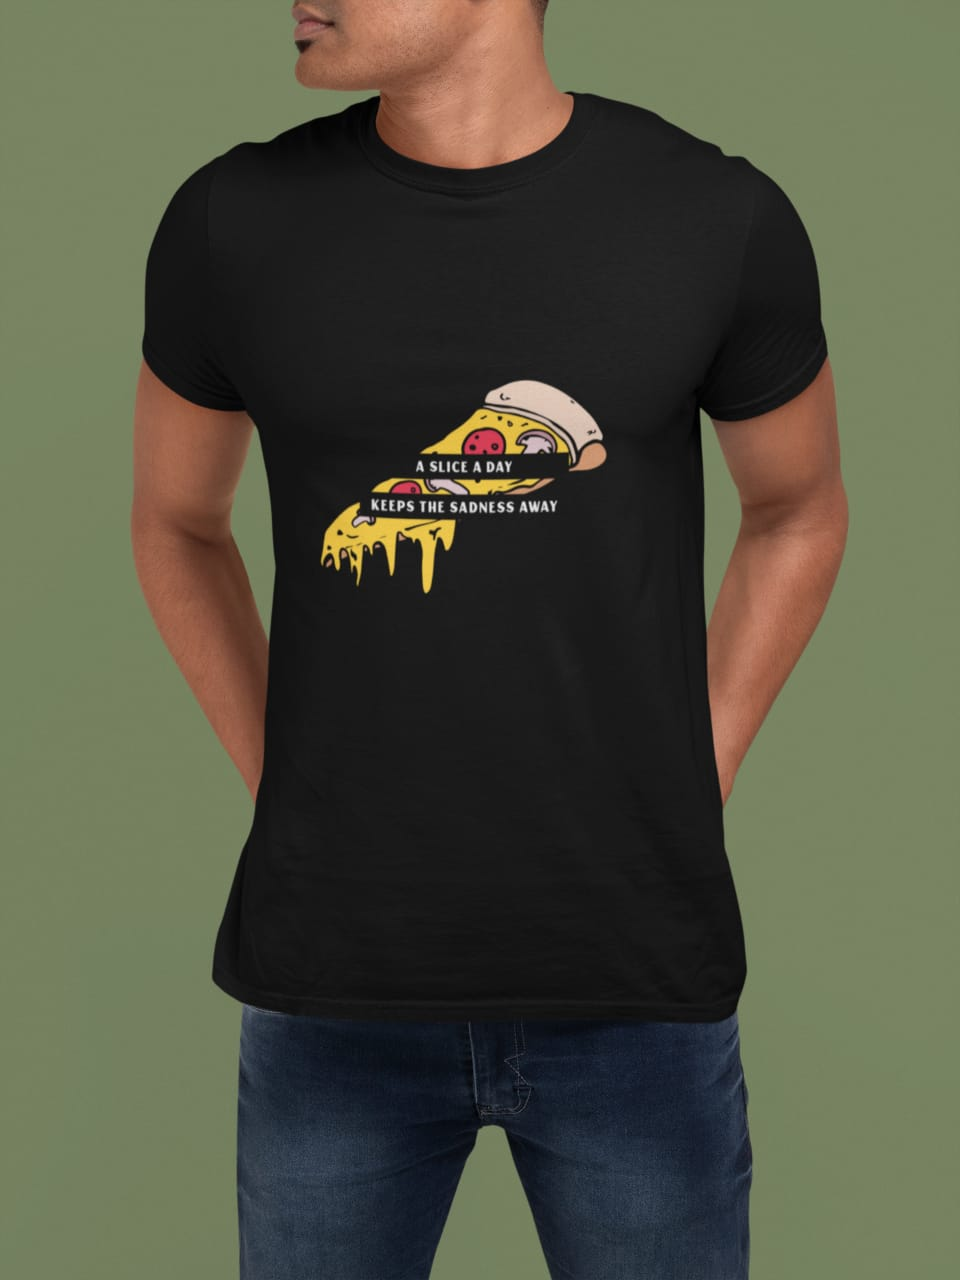 A slice a day-Graphic T-shirt